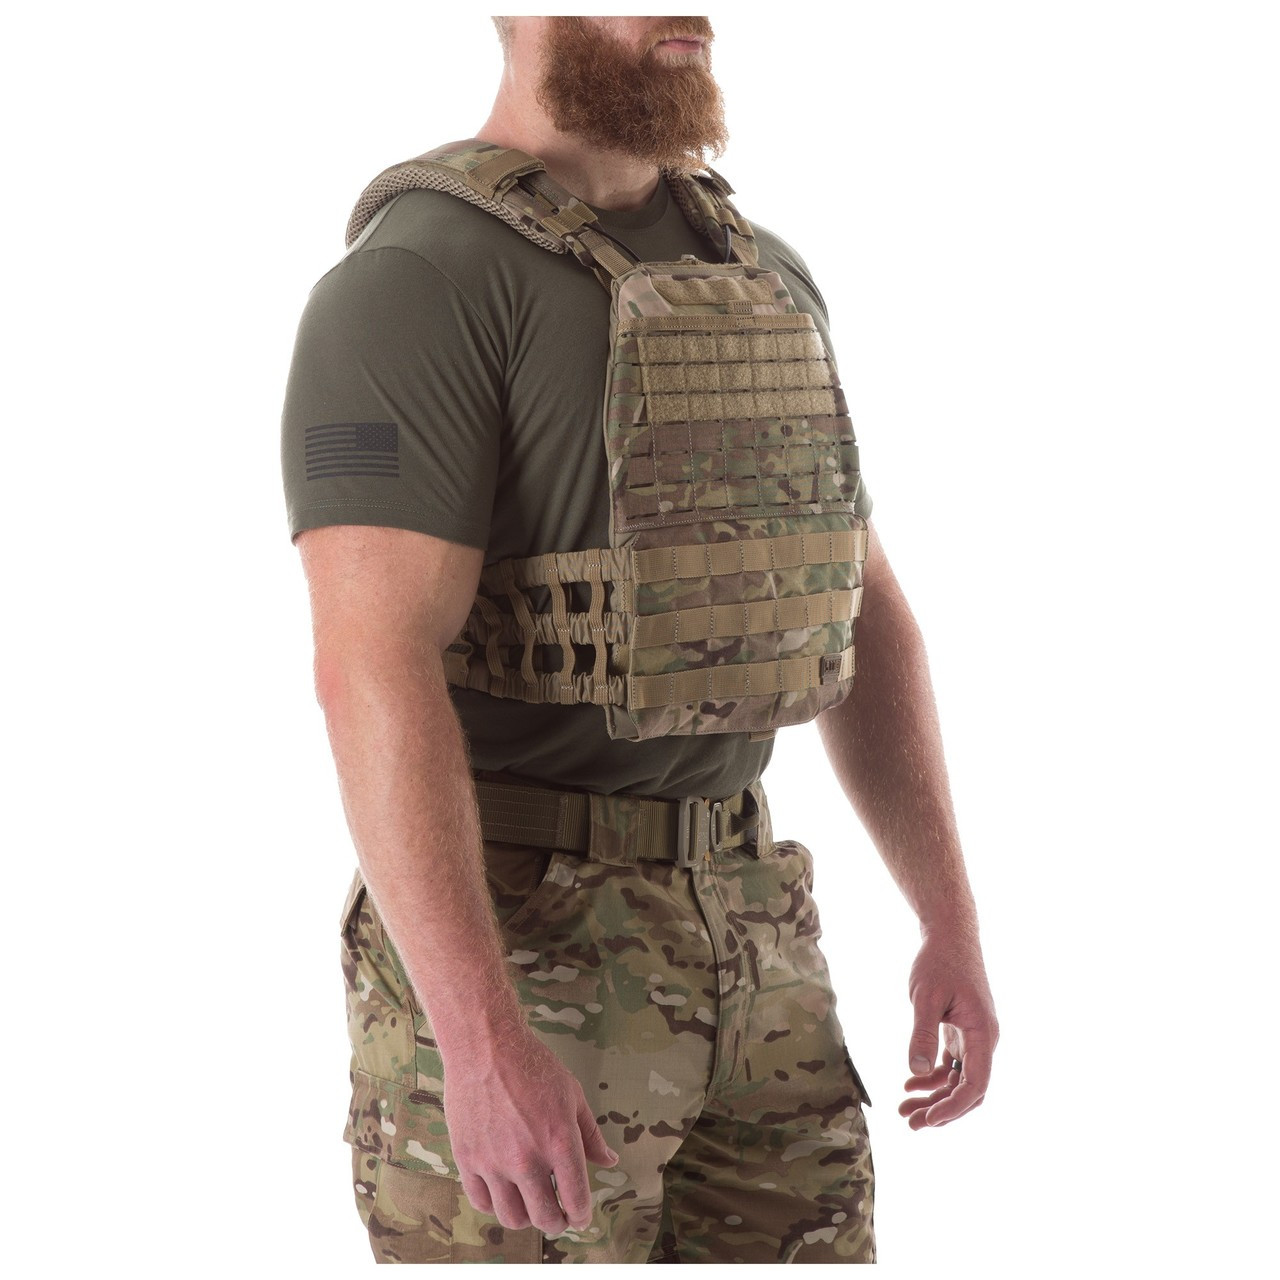 5.11 Tactical 81238-120 Hook-Back Adhesion Plate Carrier Patch Coyote